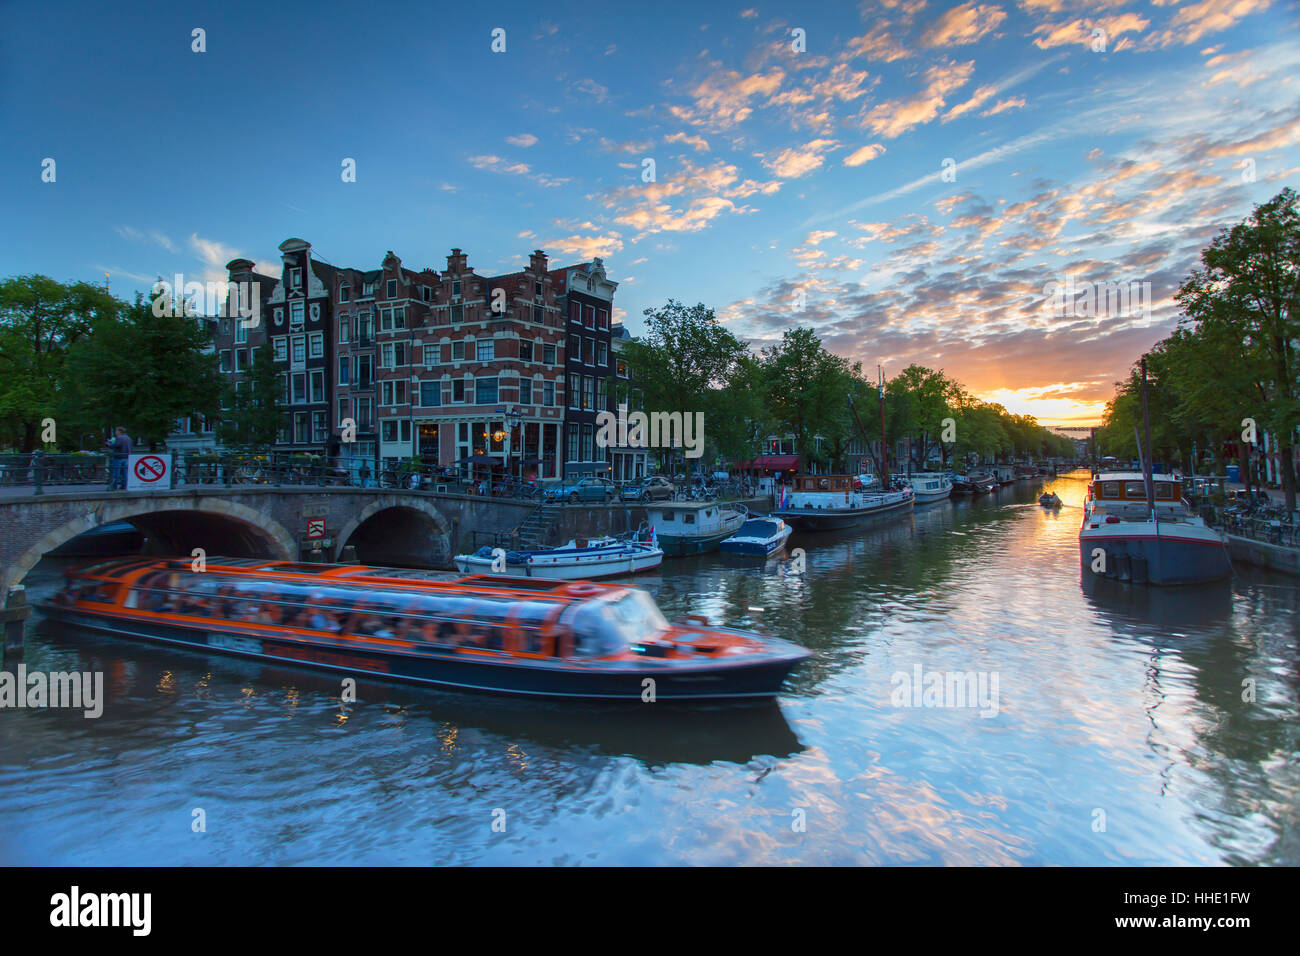 Prinsengracht and Brouwersgracht canals at sunset, Amsterdam, Netherlands - Stock Image